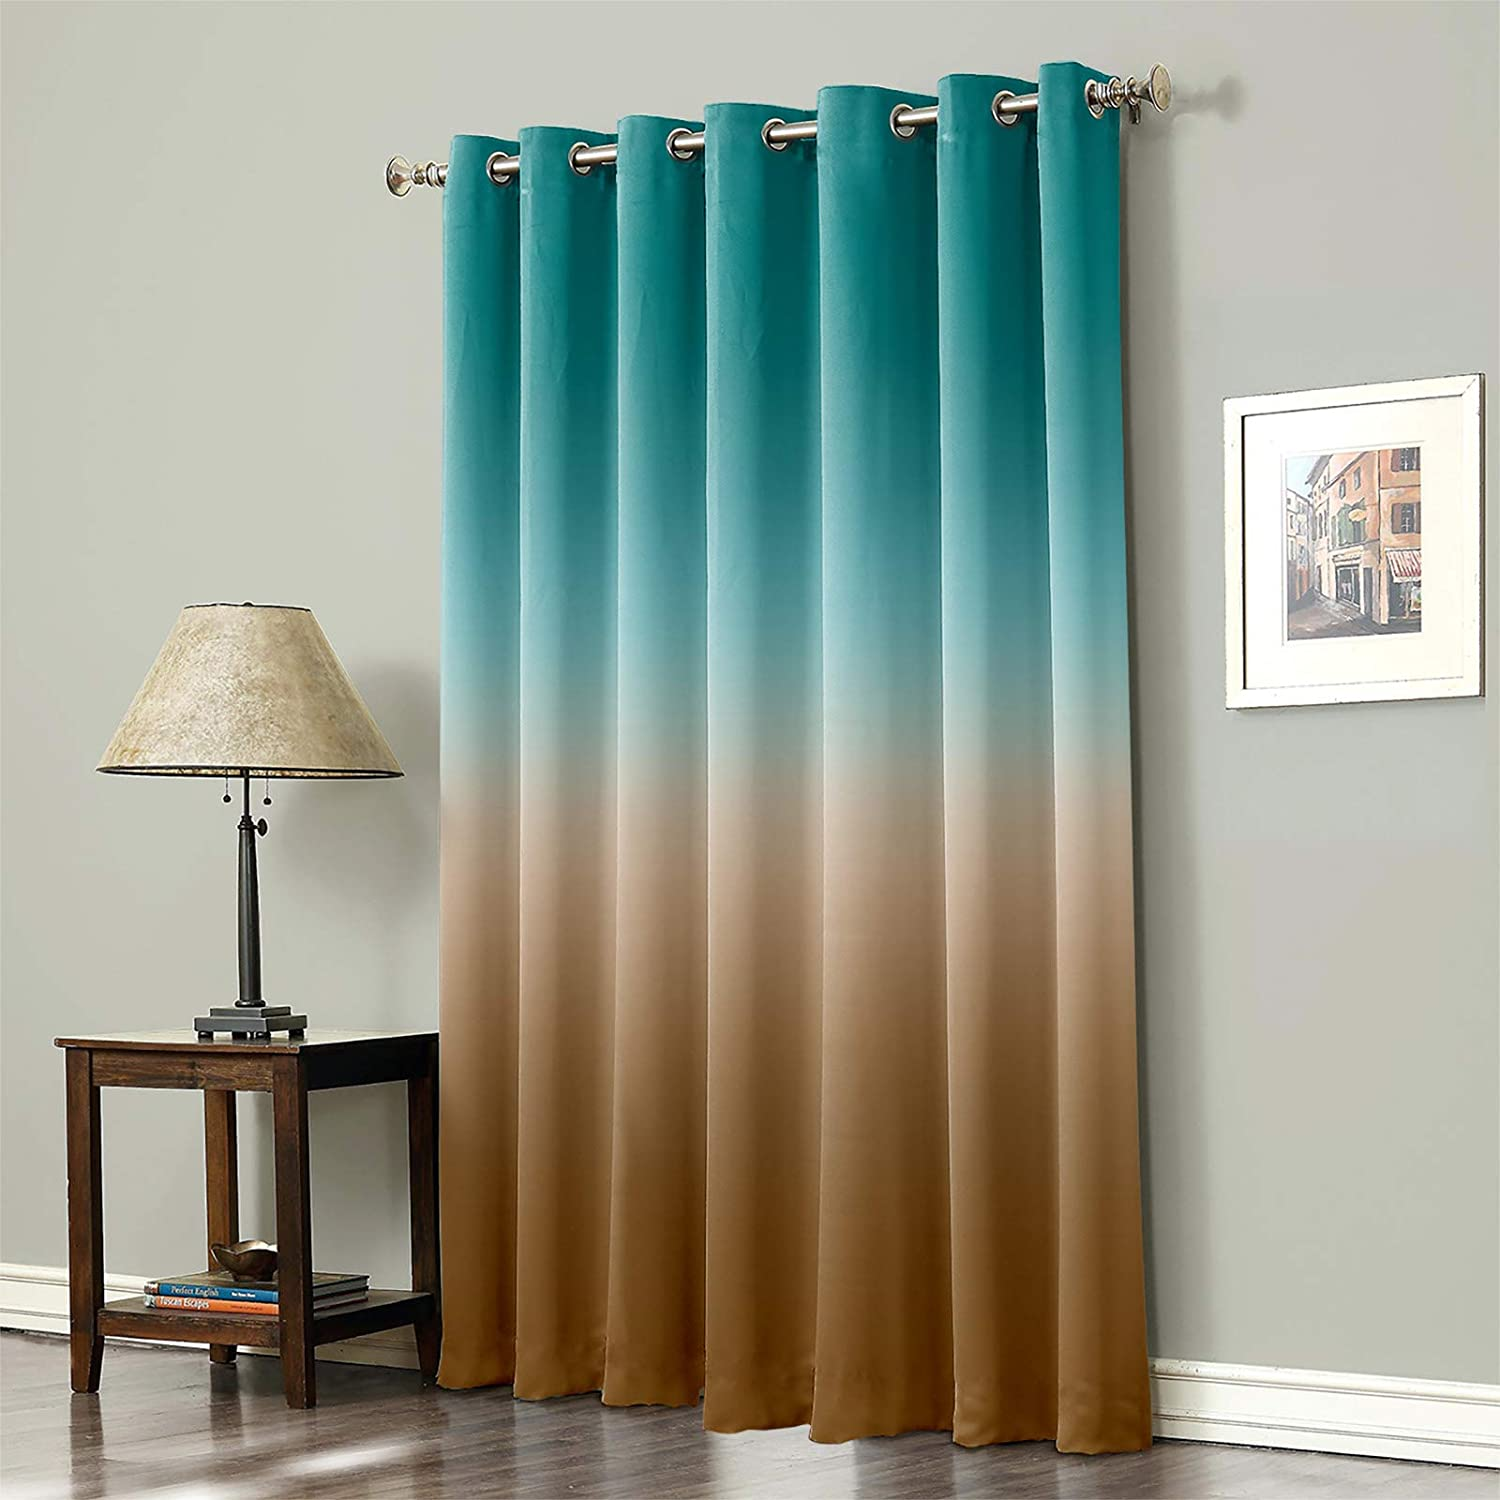 Curtains for shop Bedroom Room Darkening Max 67% OFF Curtain Living Blackout